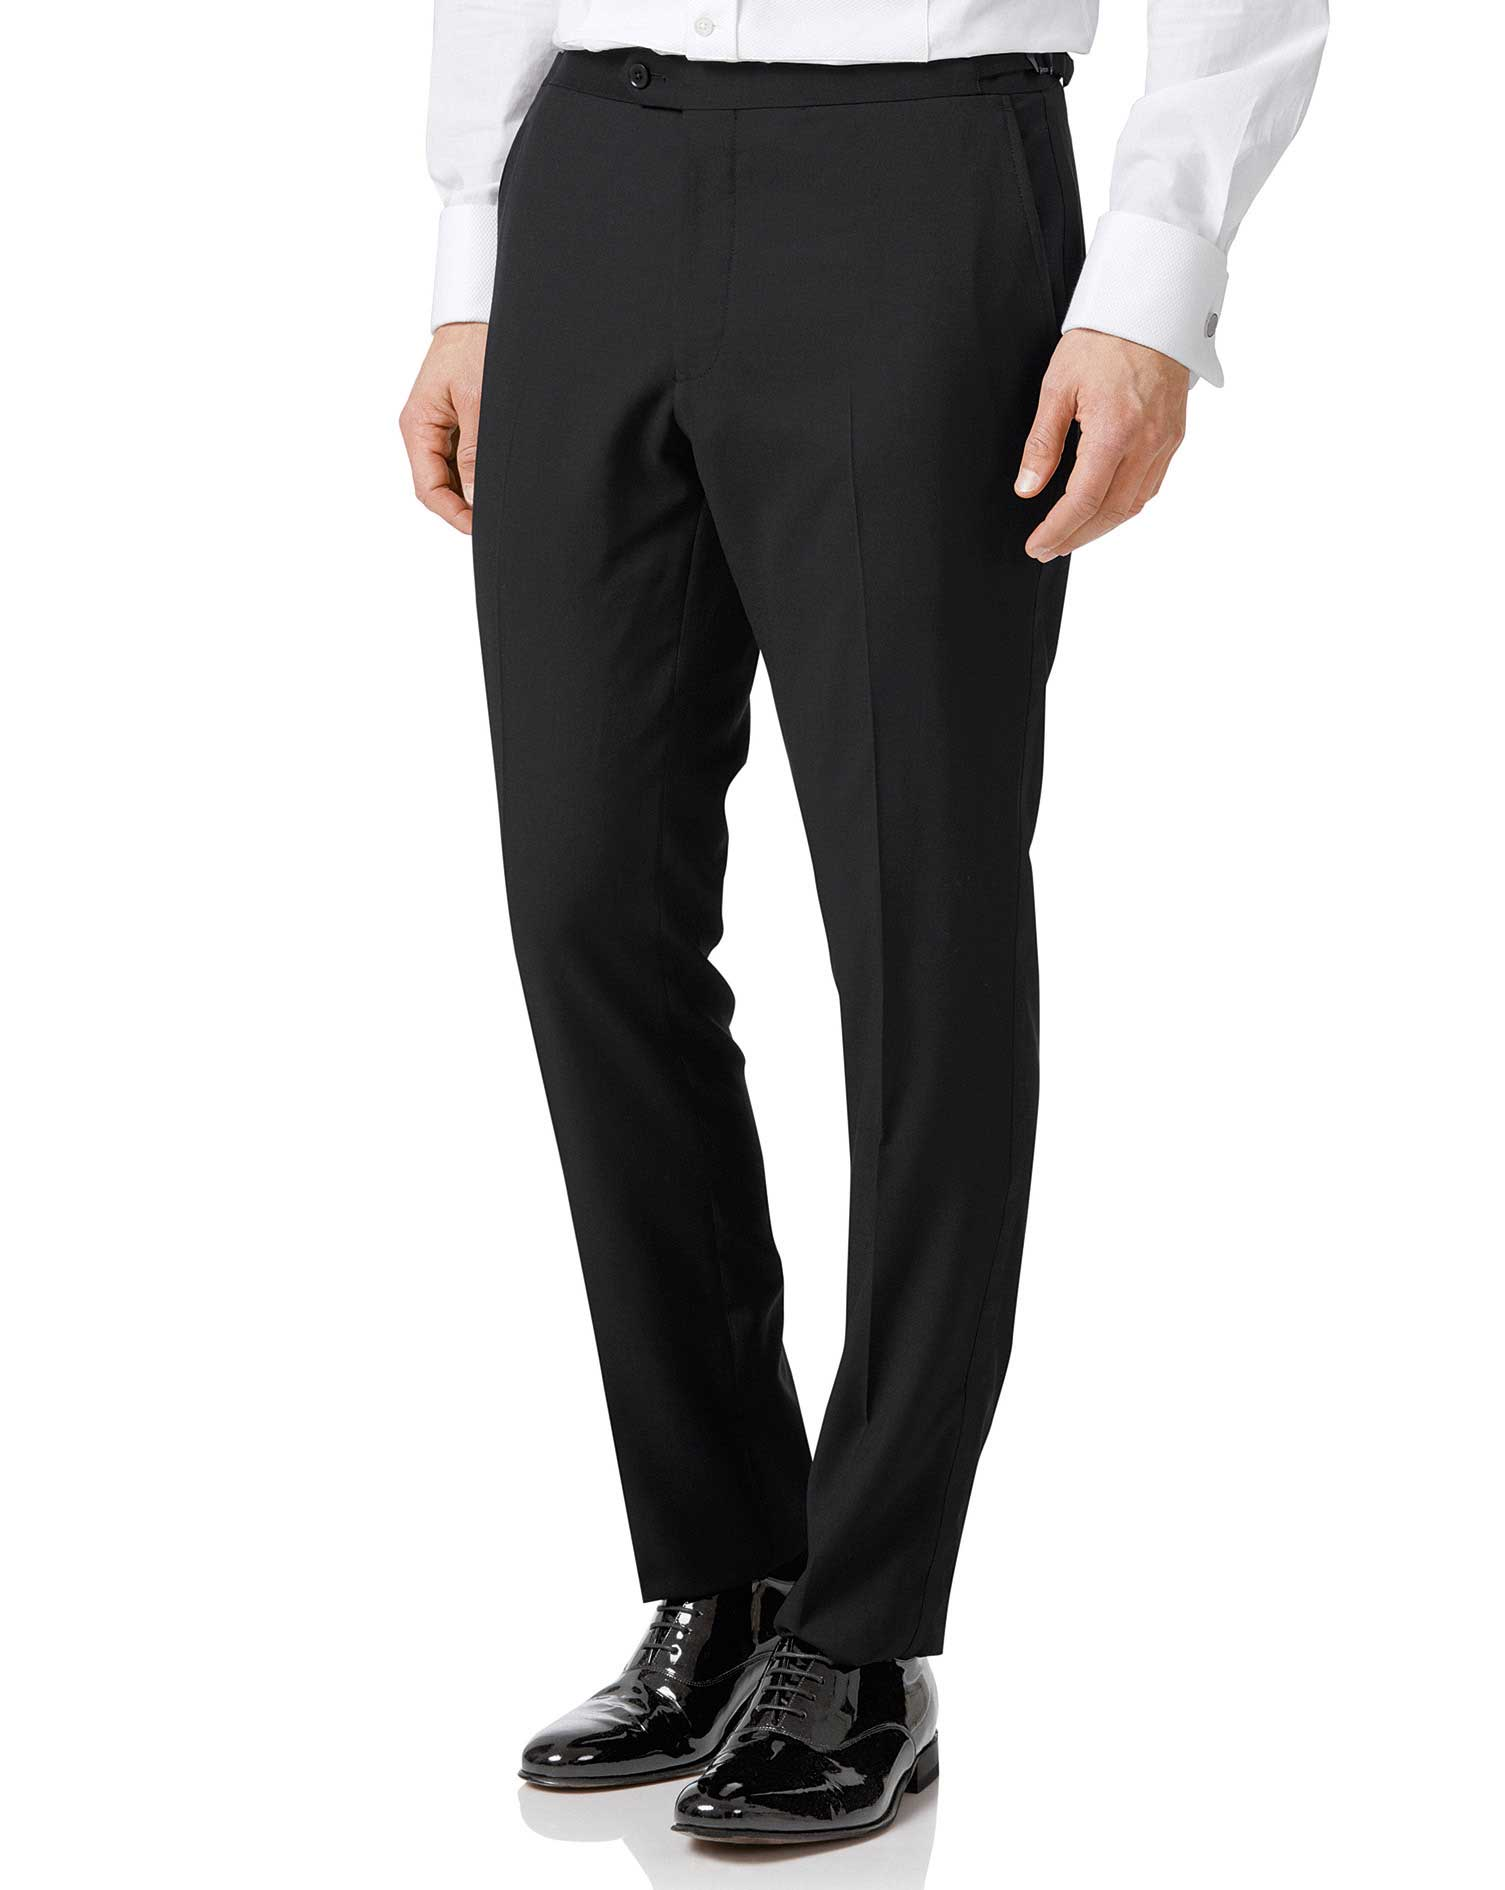 Black Extra Slim Fit Dinner Suit Trouser Size W34 L30 by Charles Tyrwhitt